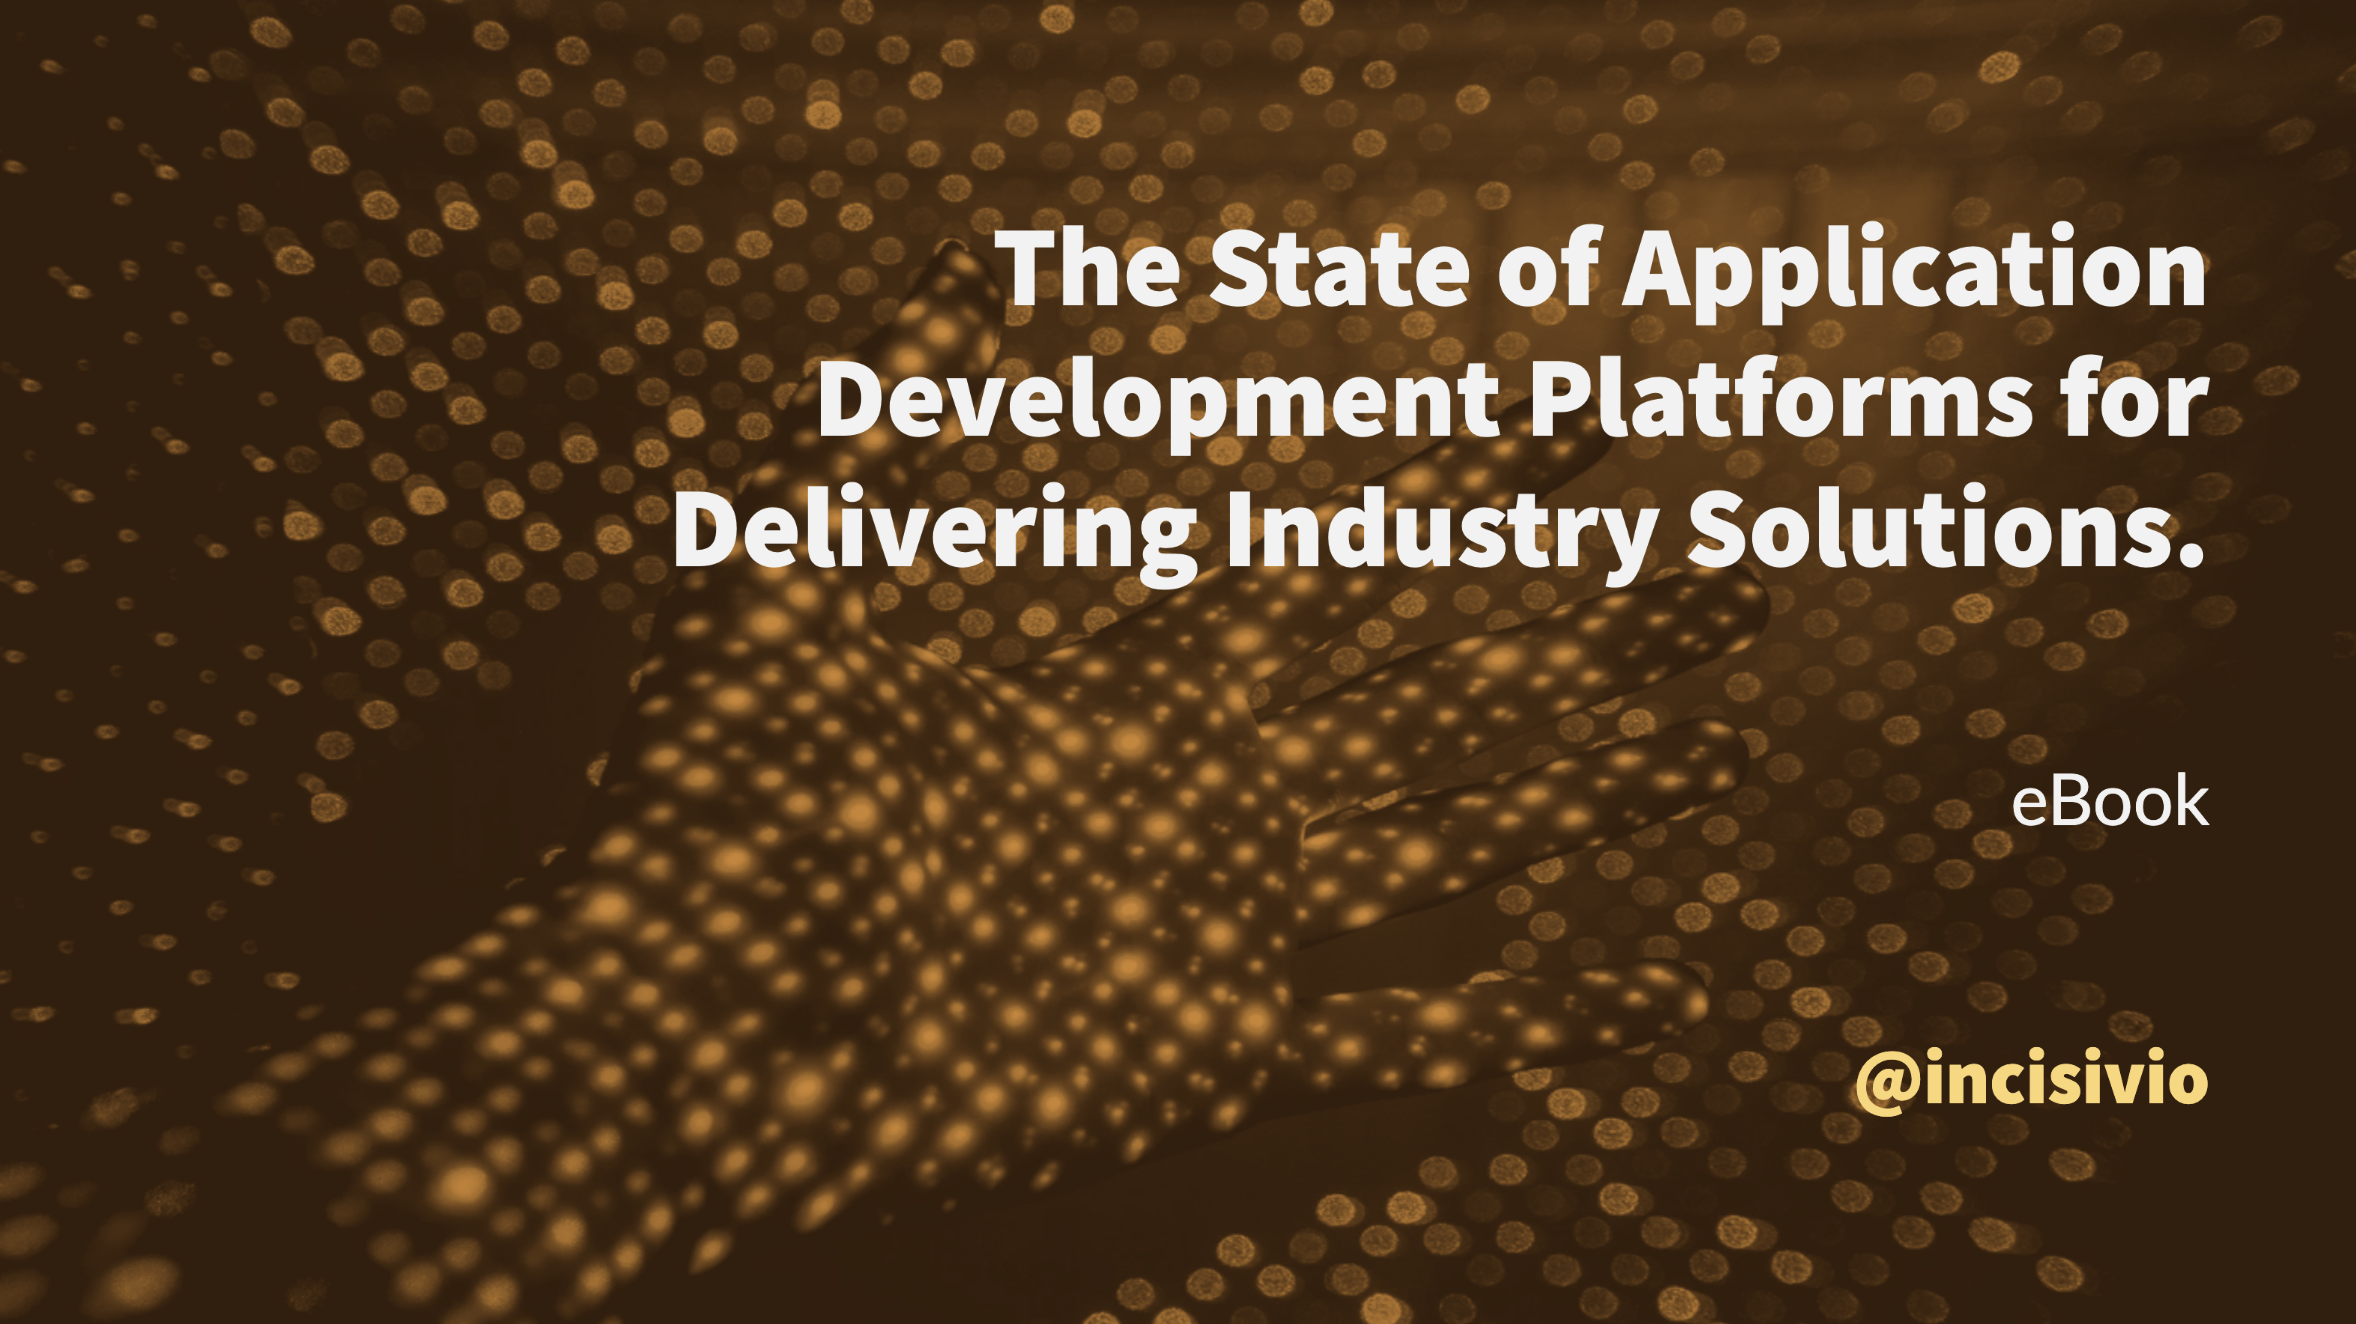 The State of Application Development Platforms for Delivering Industry Solutions.